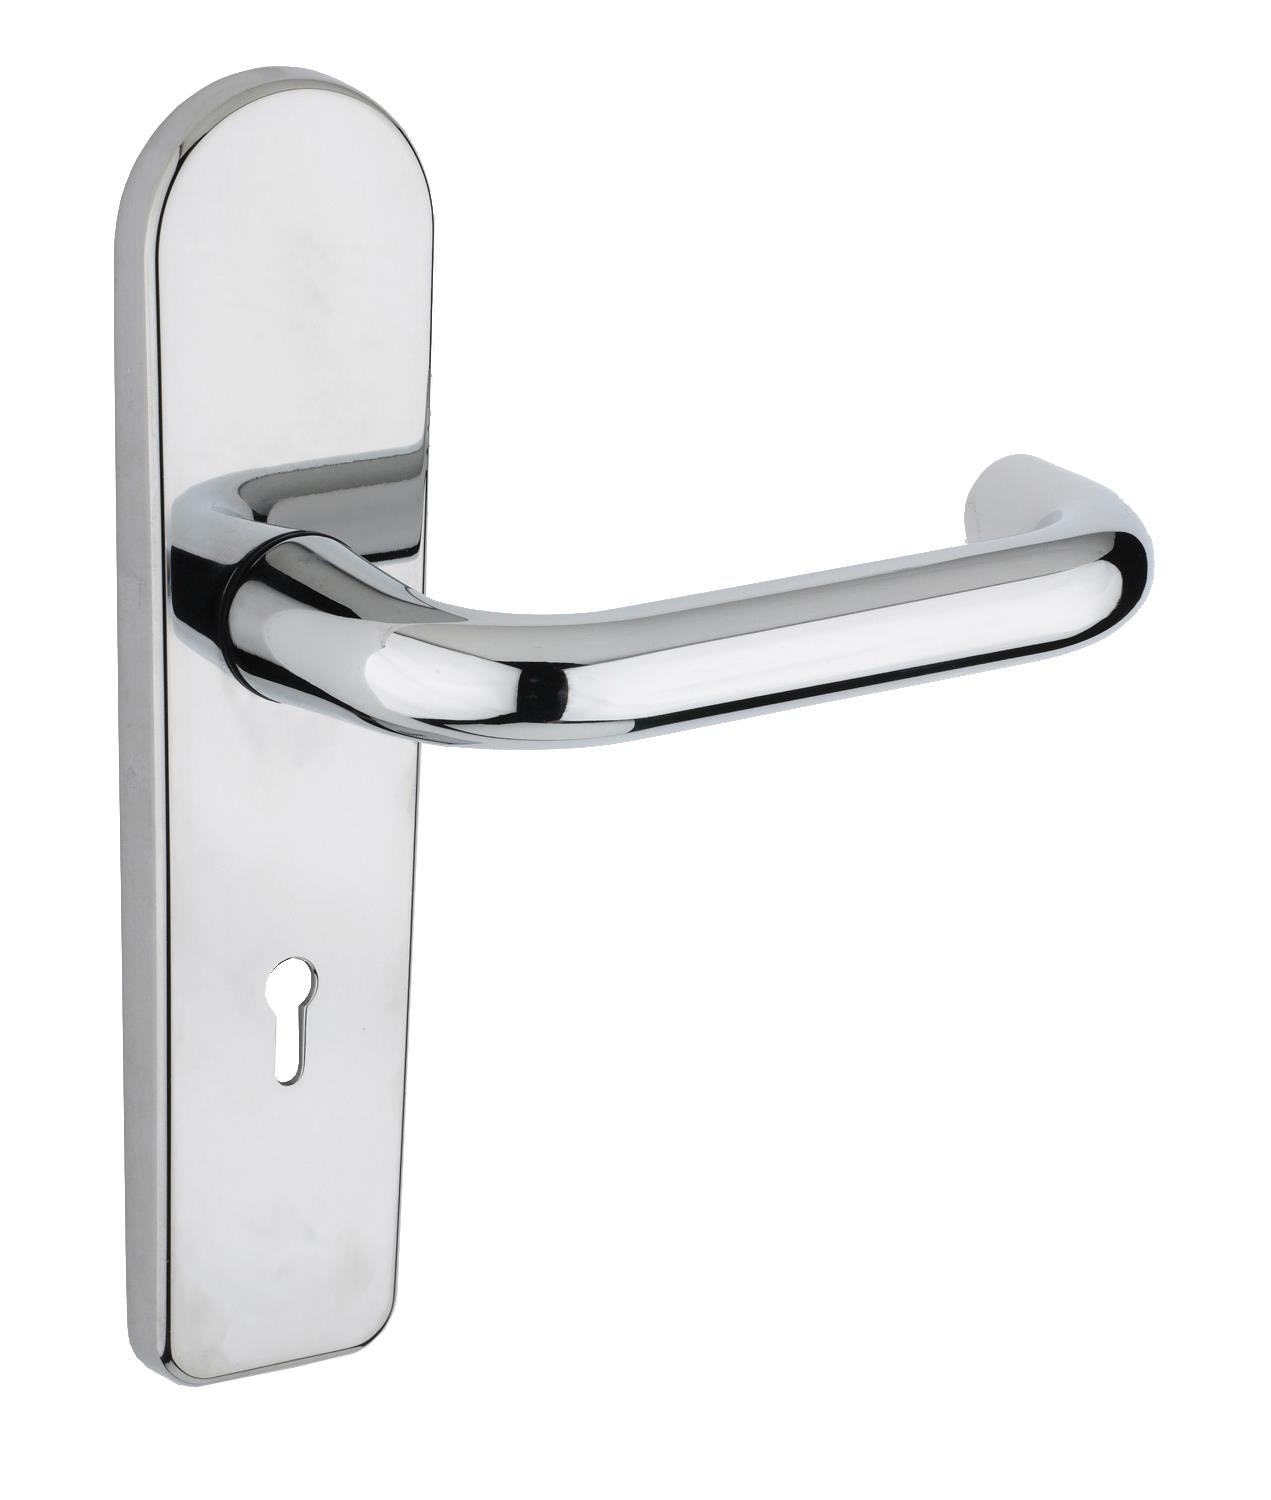 C-Series Door Furniture